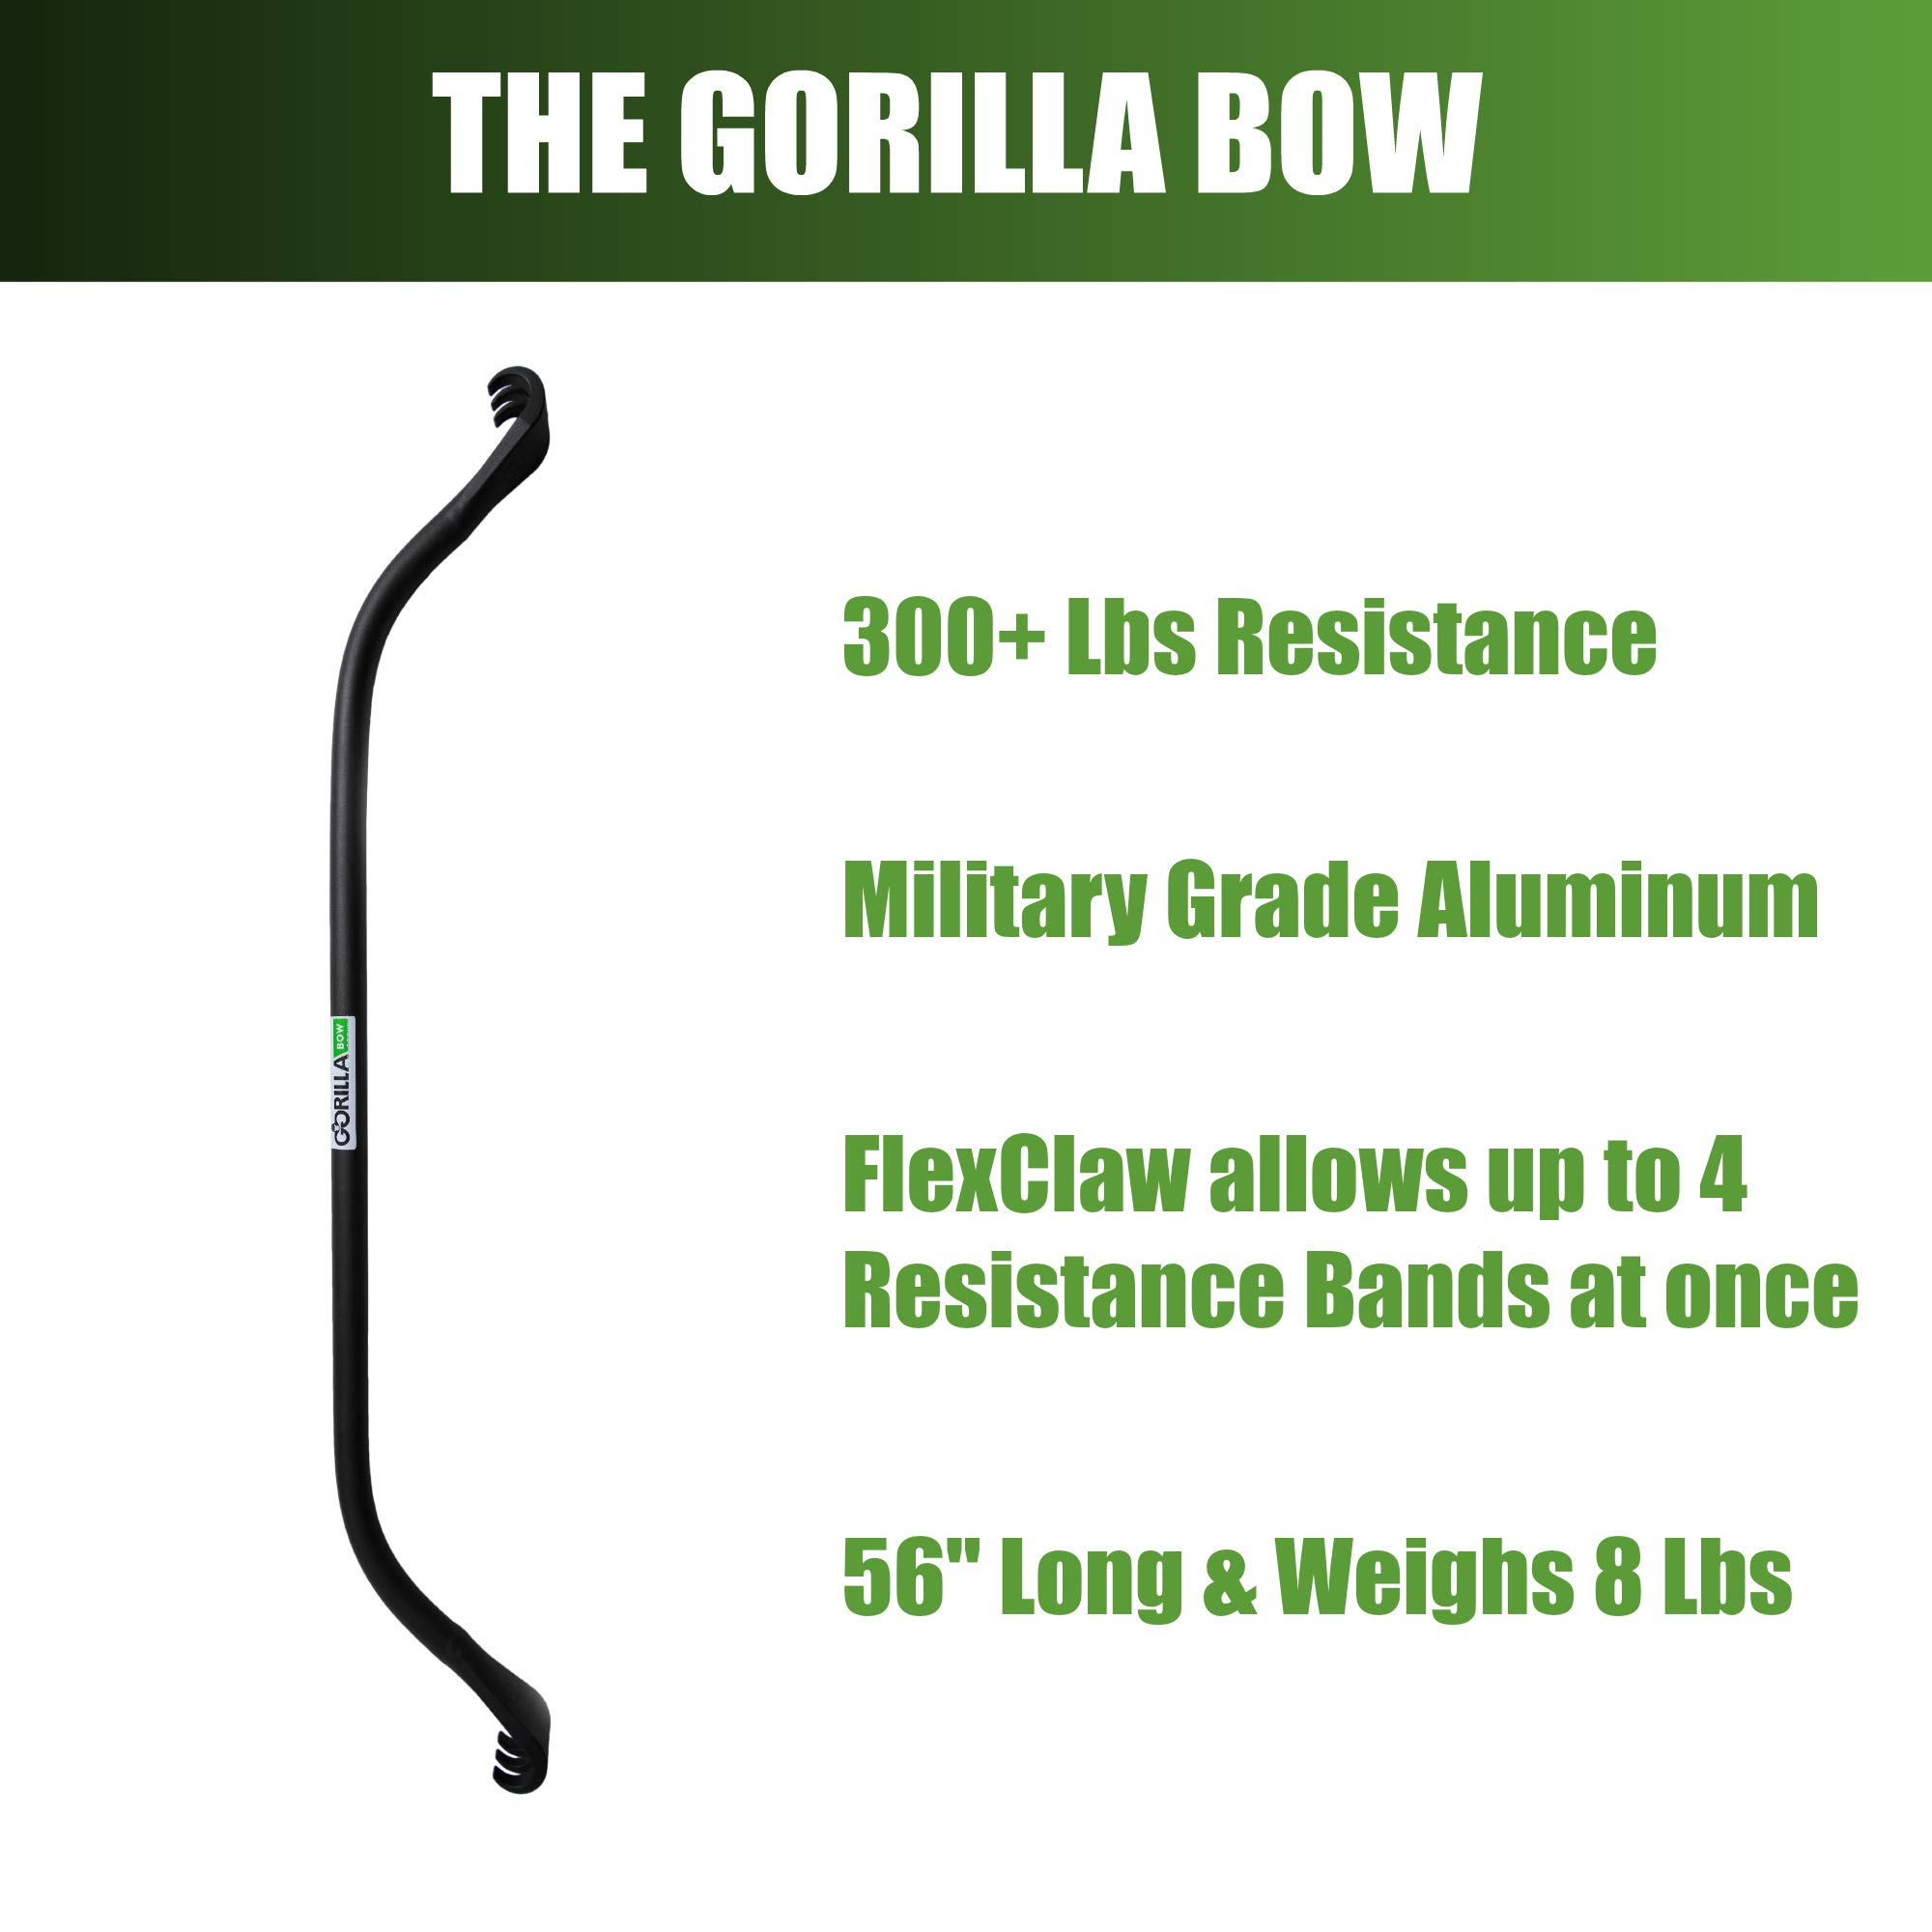 Gorilla Bow Portable Home Gym Resistance Band System | Weightlifting & HIIT Interval Training Kit | Full Body Workout Equipment (Black) by Gorilla Fitness (Image #4)